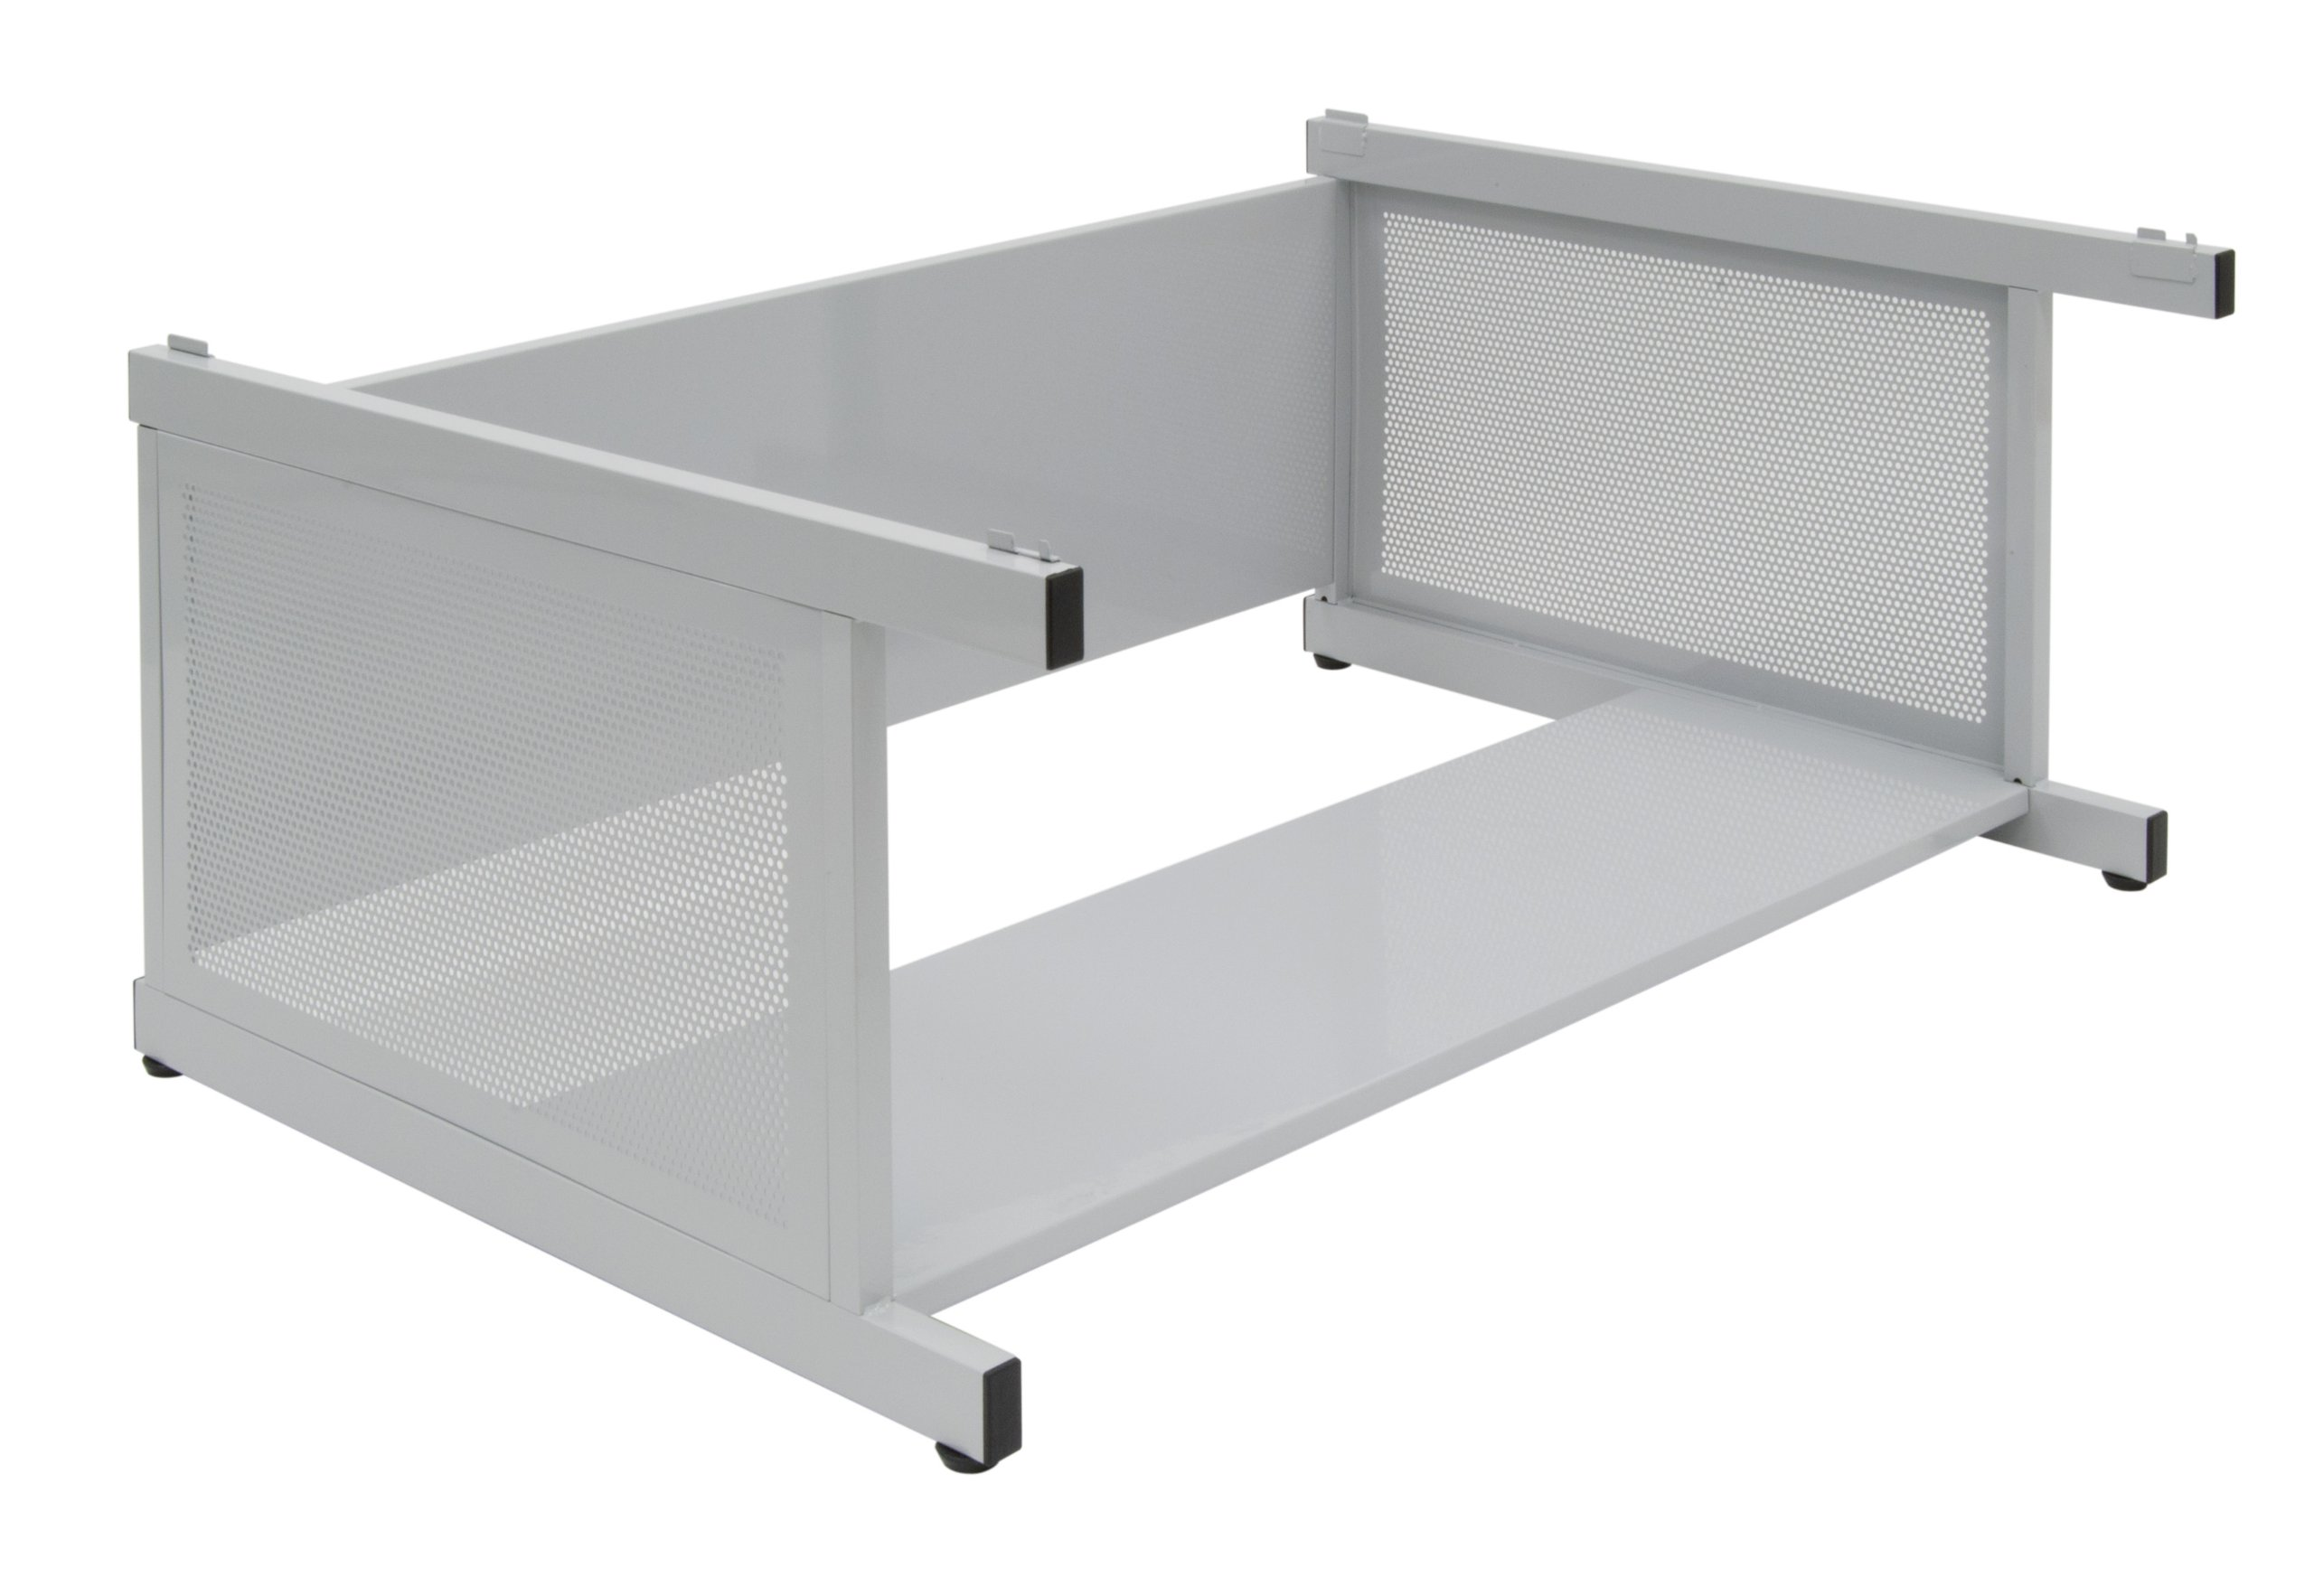 Studio Designs Flat File Stand in Light Grey 46.75 inches wide by 35.5 inches deep 60735